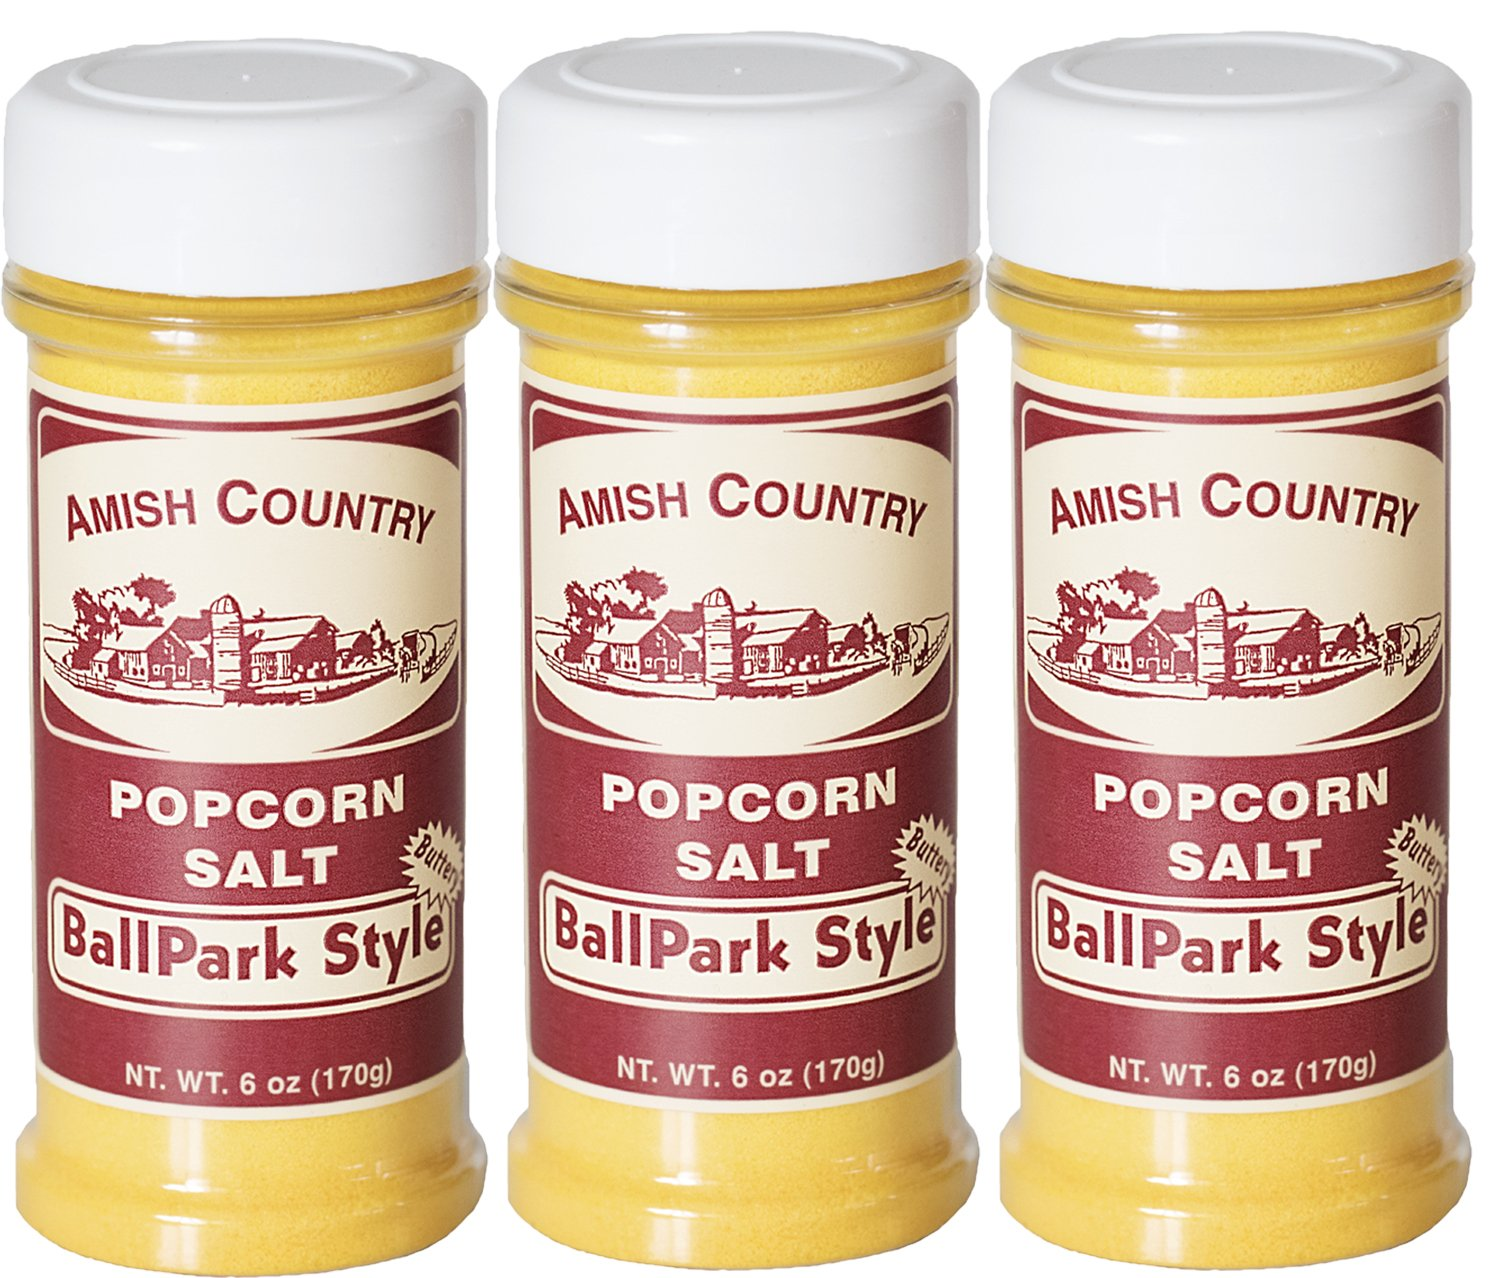 Amish Country Popcorn - 3 Pack Ballpark ButterSalt (6 Ounce) Old Fashioned Goodness With Recipe Guide by Amish Country Popcorn